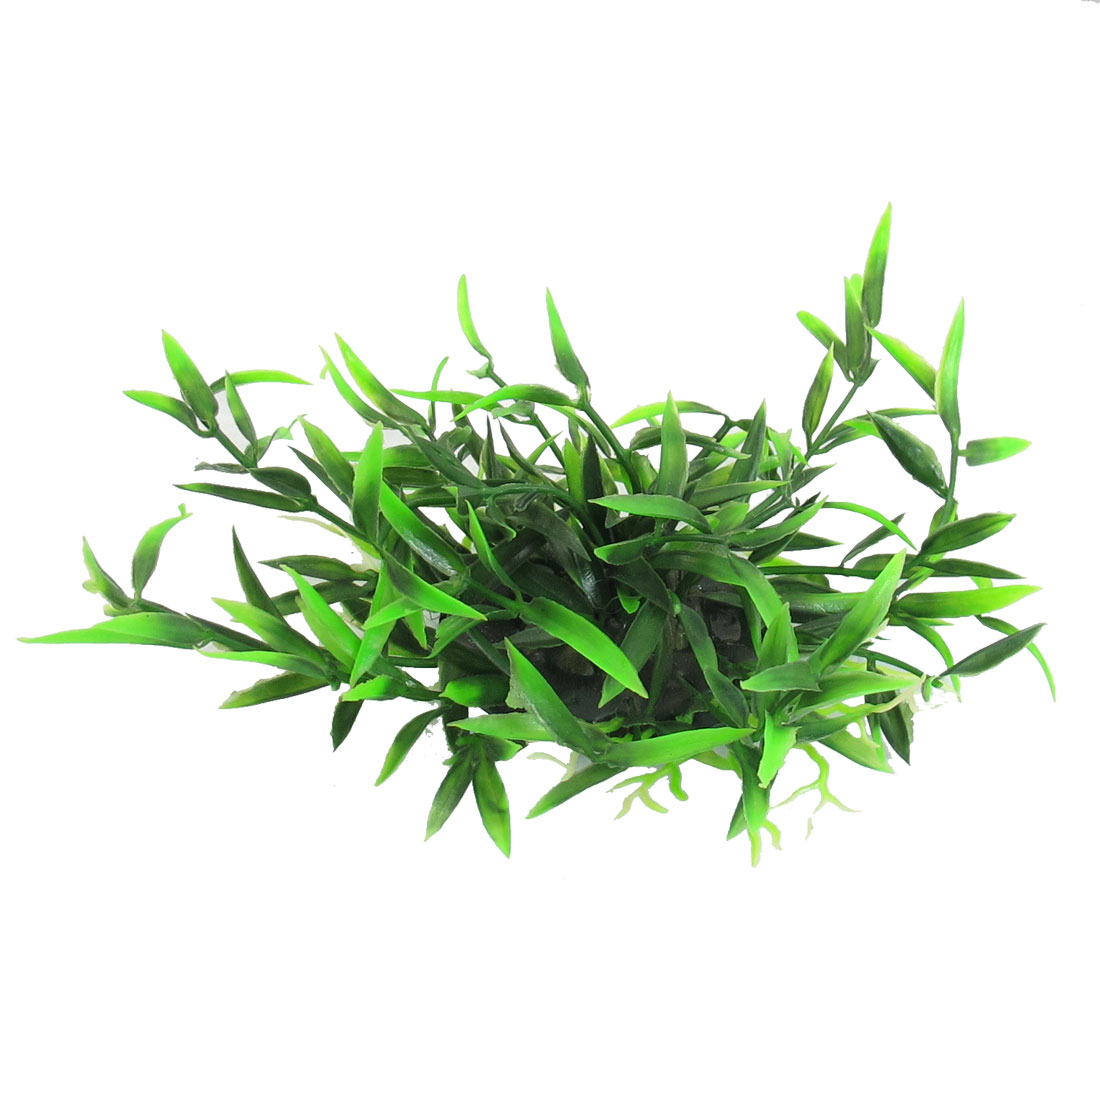 Unique Bargains Unique Bargains Emulational Plant Grass Aquarium Fish Tank Decor Green 4""